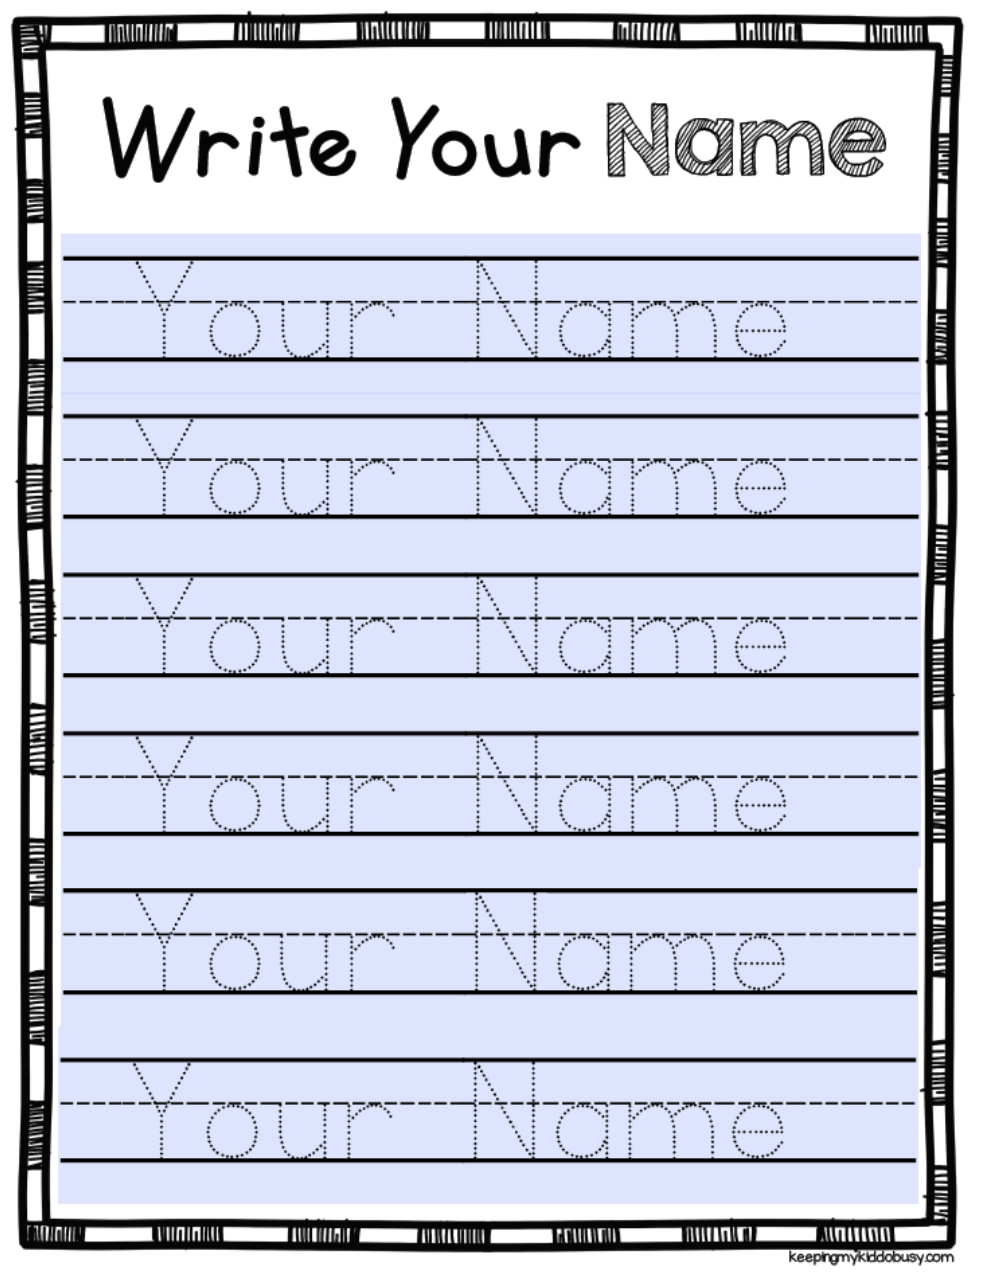 Free Editable Name Tracing Activity - Type Student Names And pertaining to Name Tracing Kindergarten